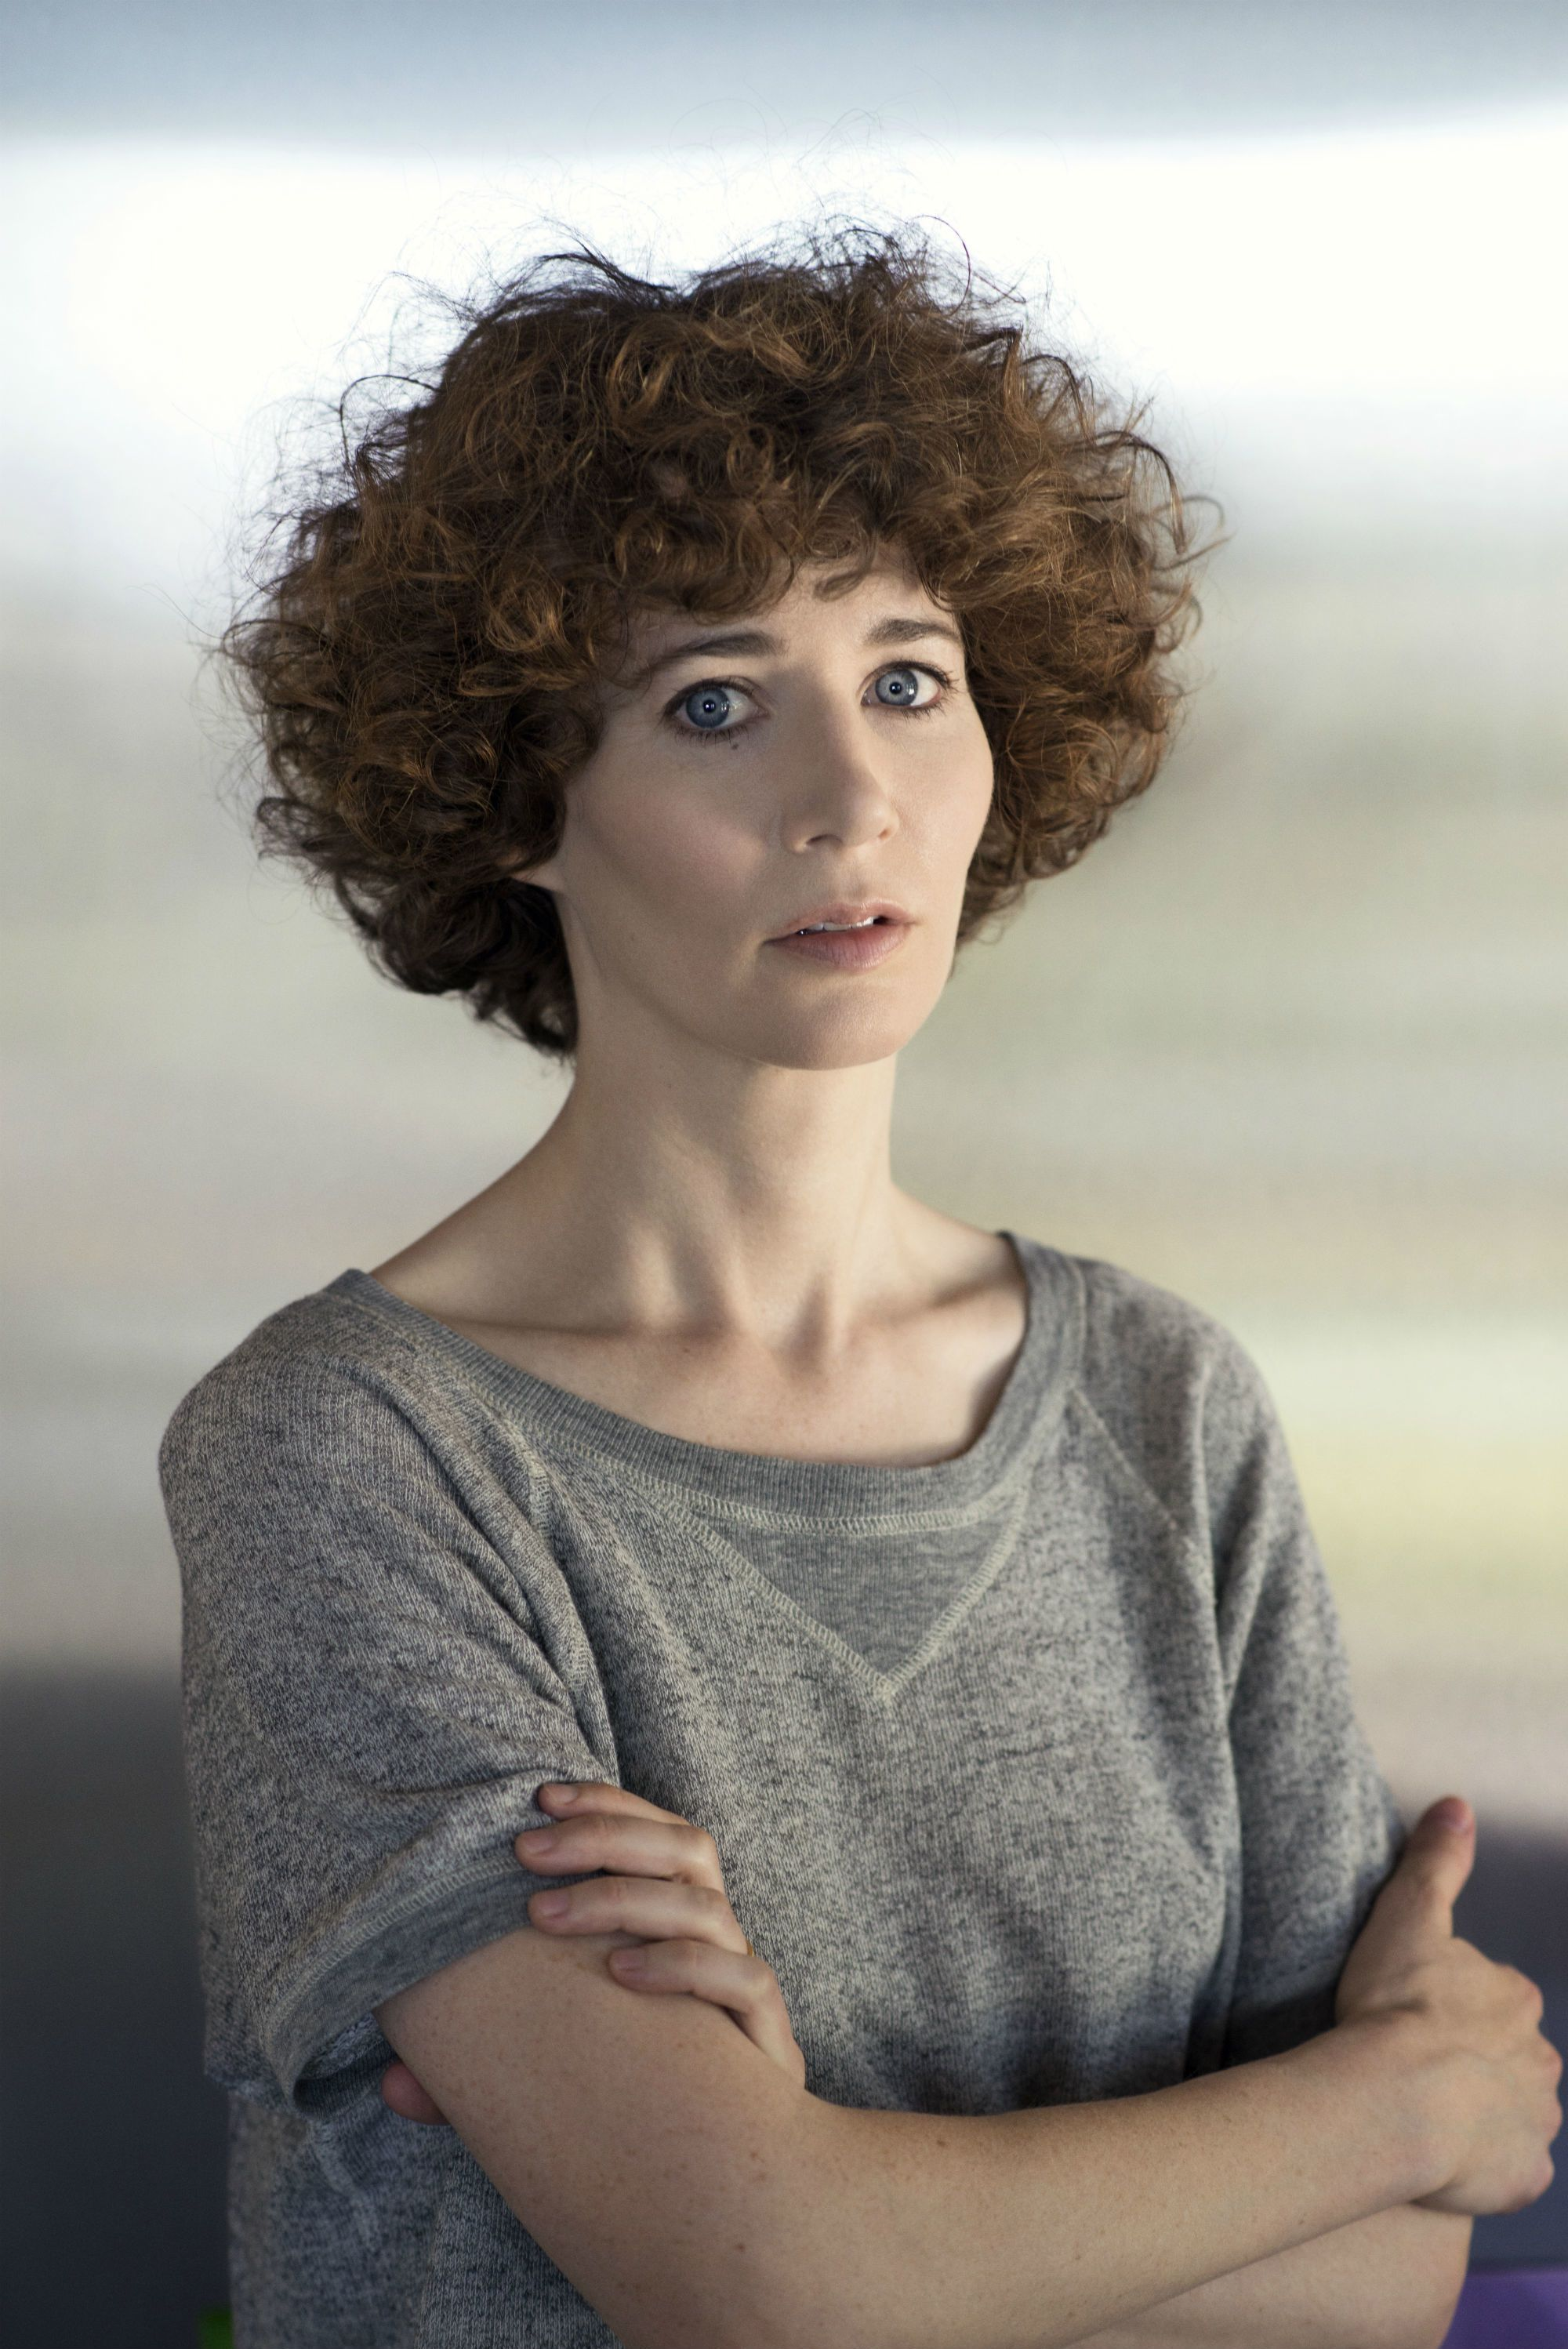 miranda july on making films writing books and listening to